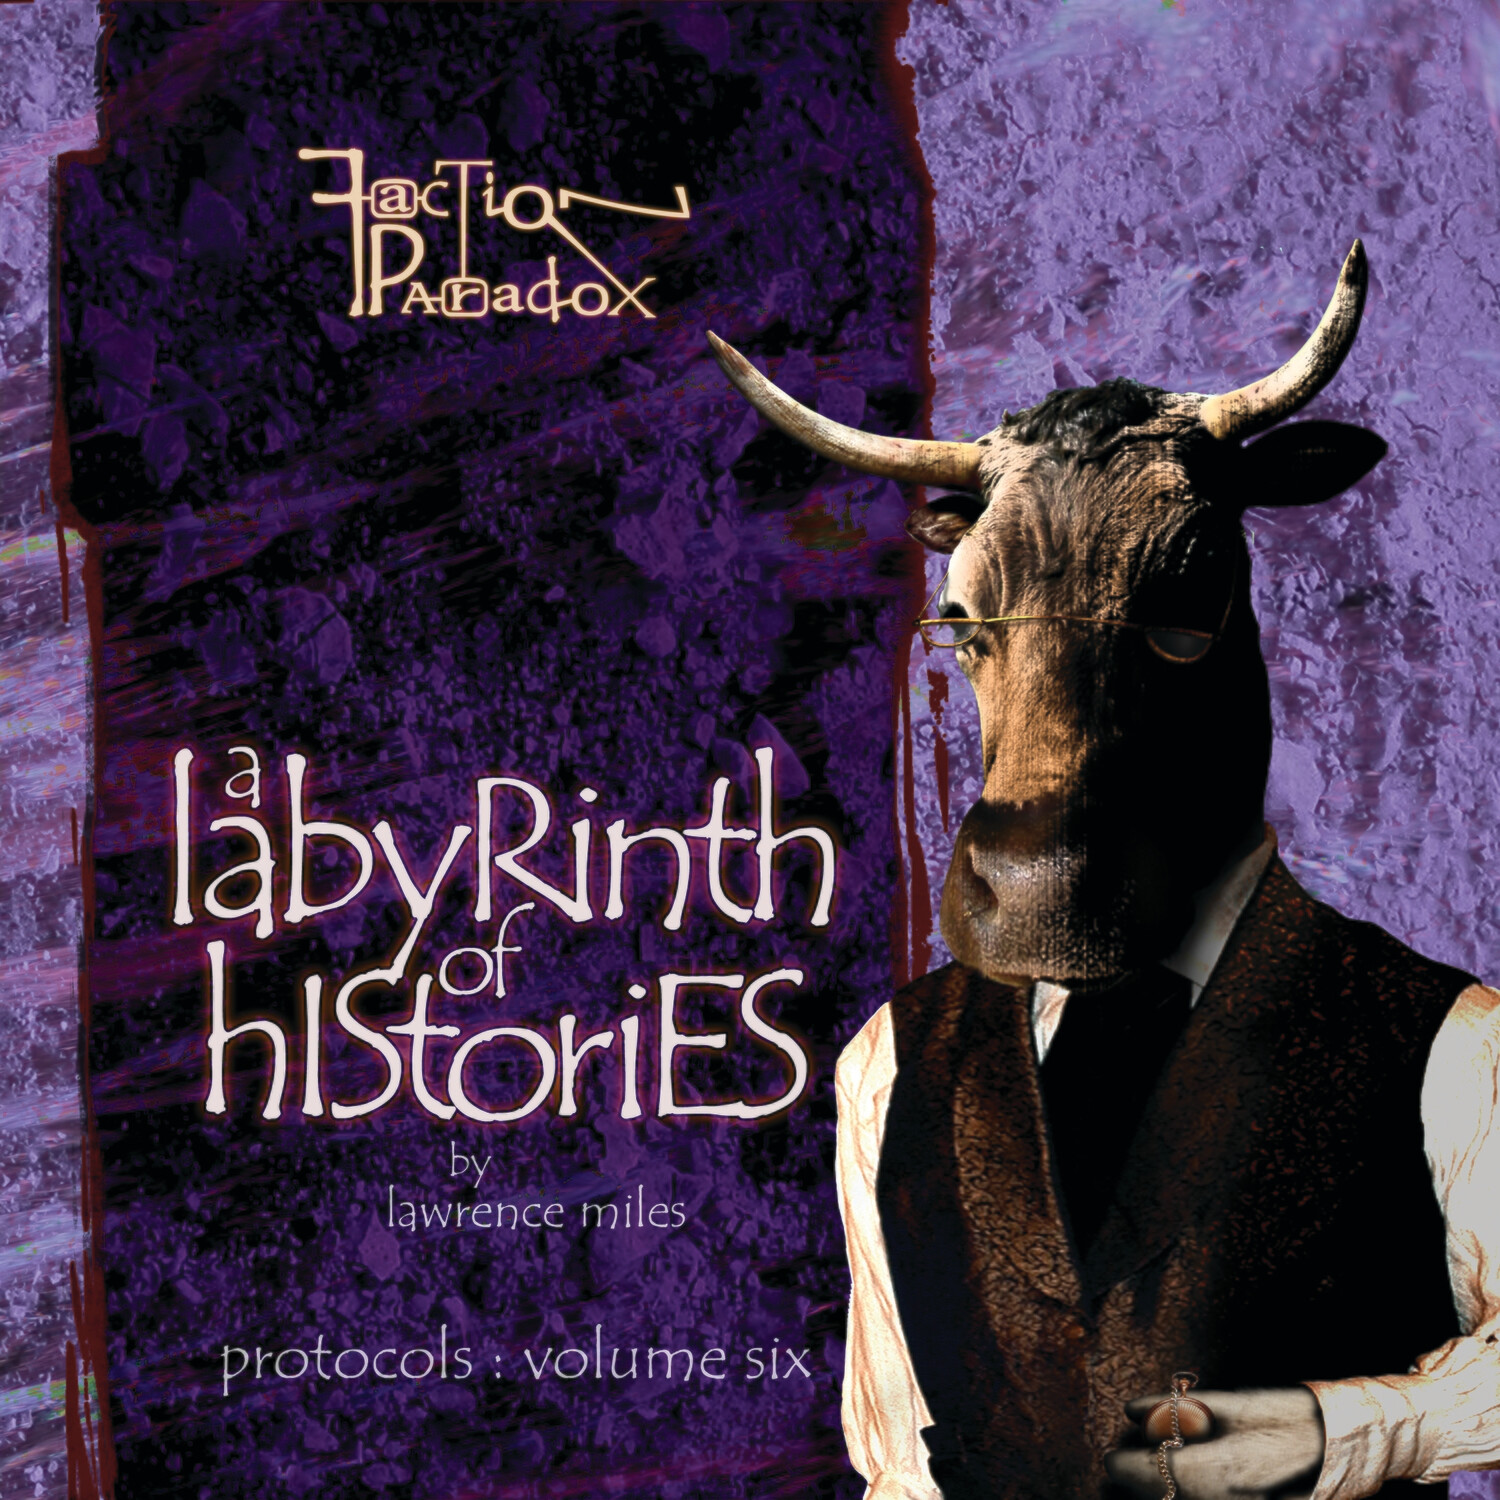 Faction Paradox: A Labyrinth of Histories (CD)